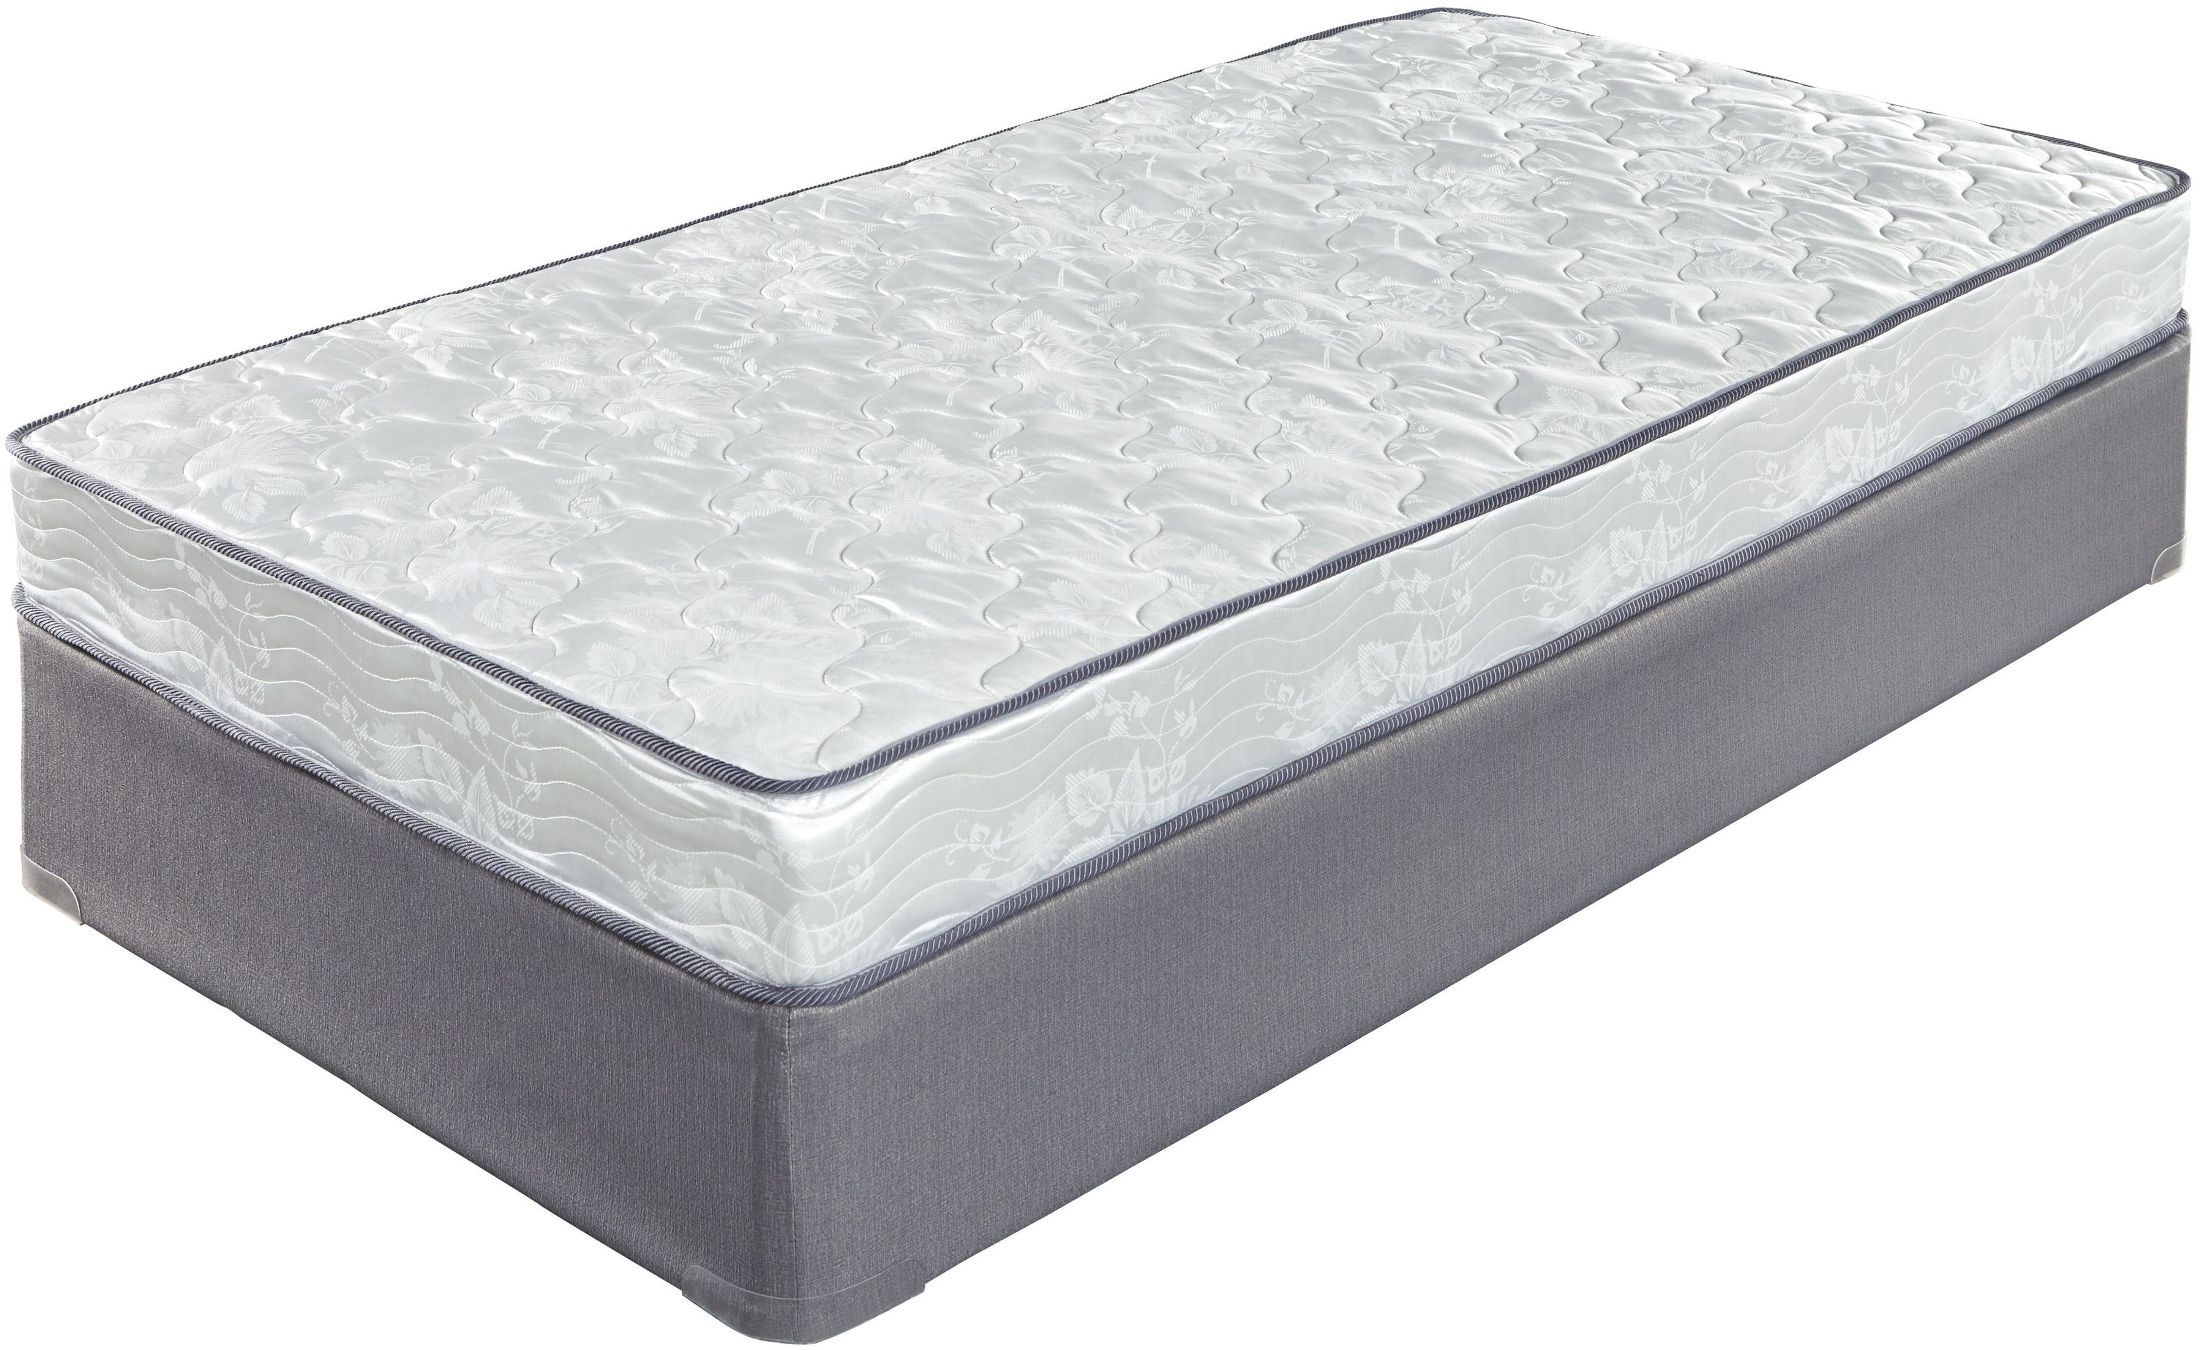 6 Inch Bonell White Twin Mattress With Foundation From Ashley Coleman Furniture